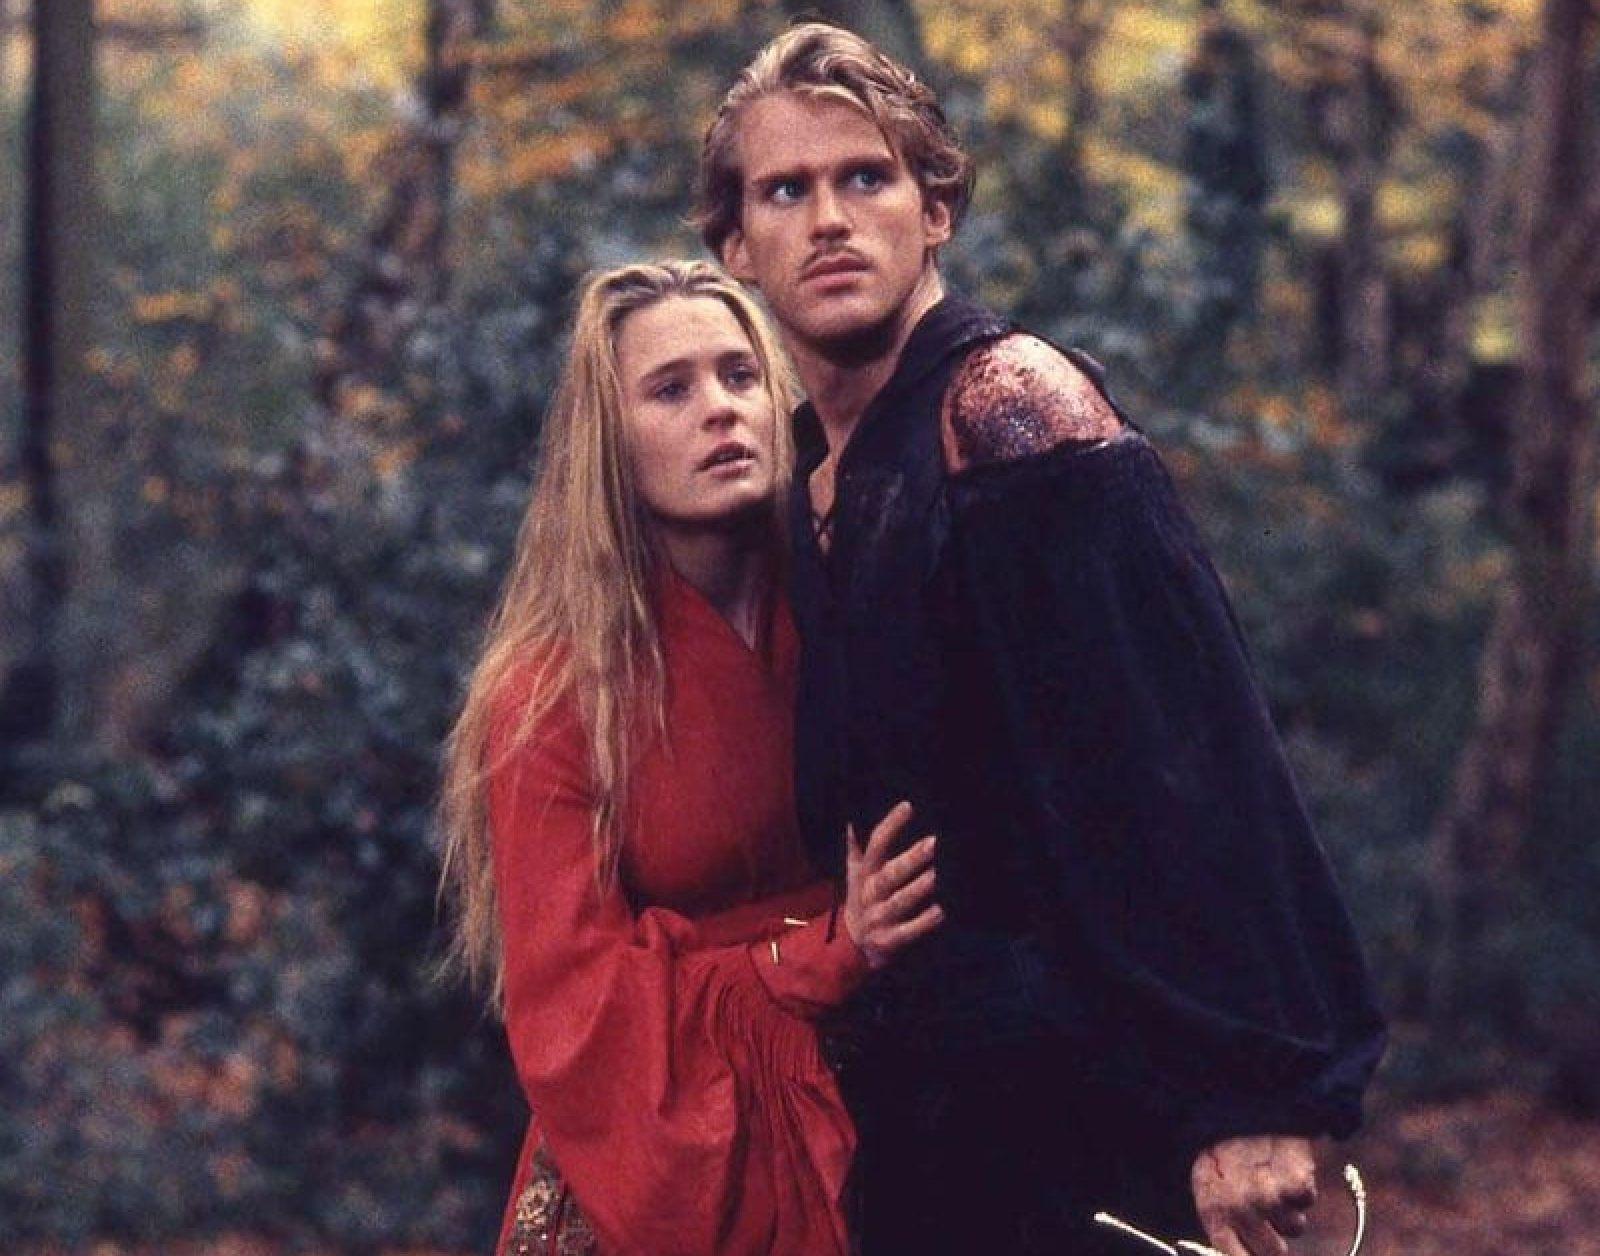 31 princess bride 1 ea2239424984052a35f5c1c1f83709ec e1603708064221 10 Things You Never Knew About Cary Elwes